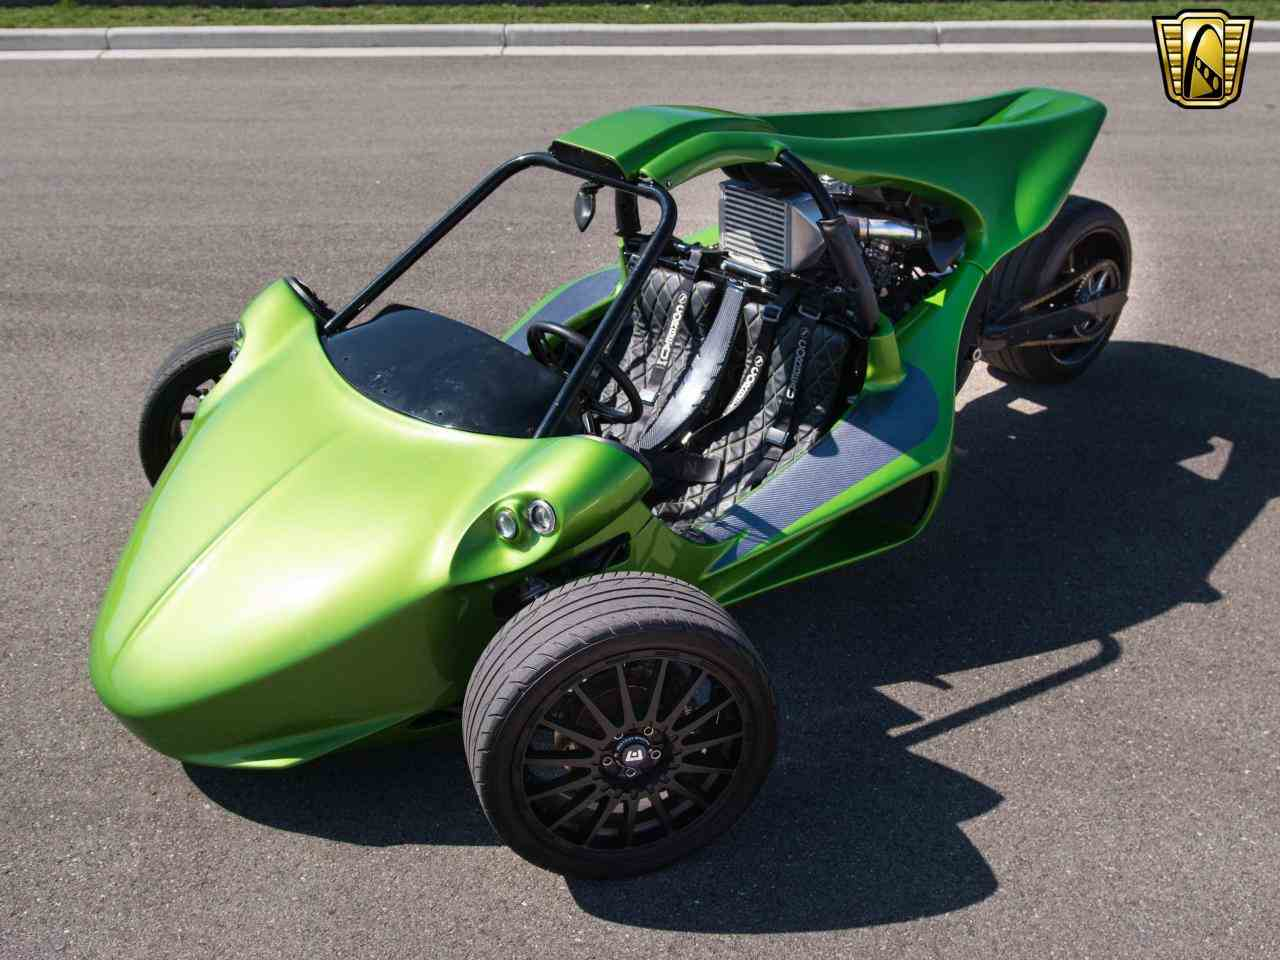 Large Picture of '08 Kawasaki T-Rex Replica - $44,595.00 Offered by Gateway Classic Cars - Milwaukee - L7NA